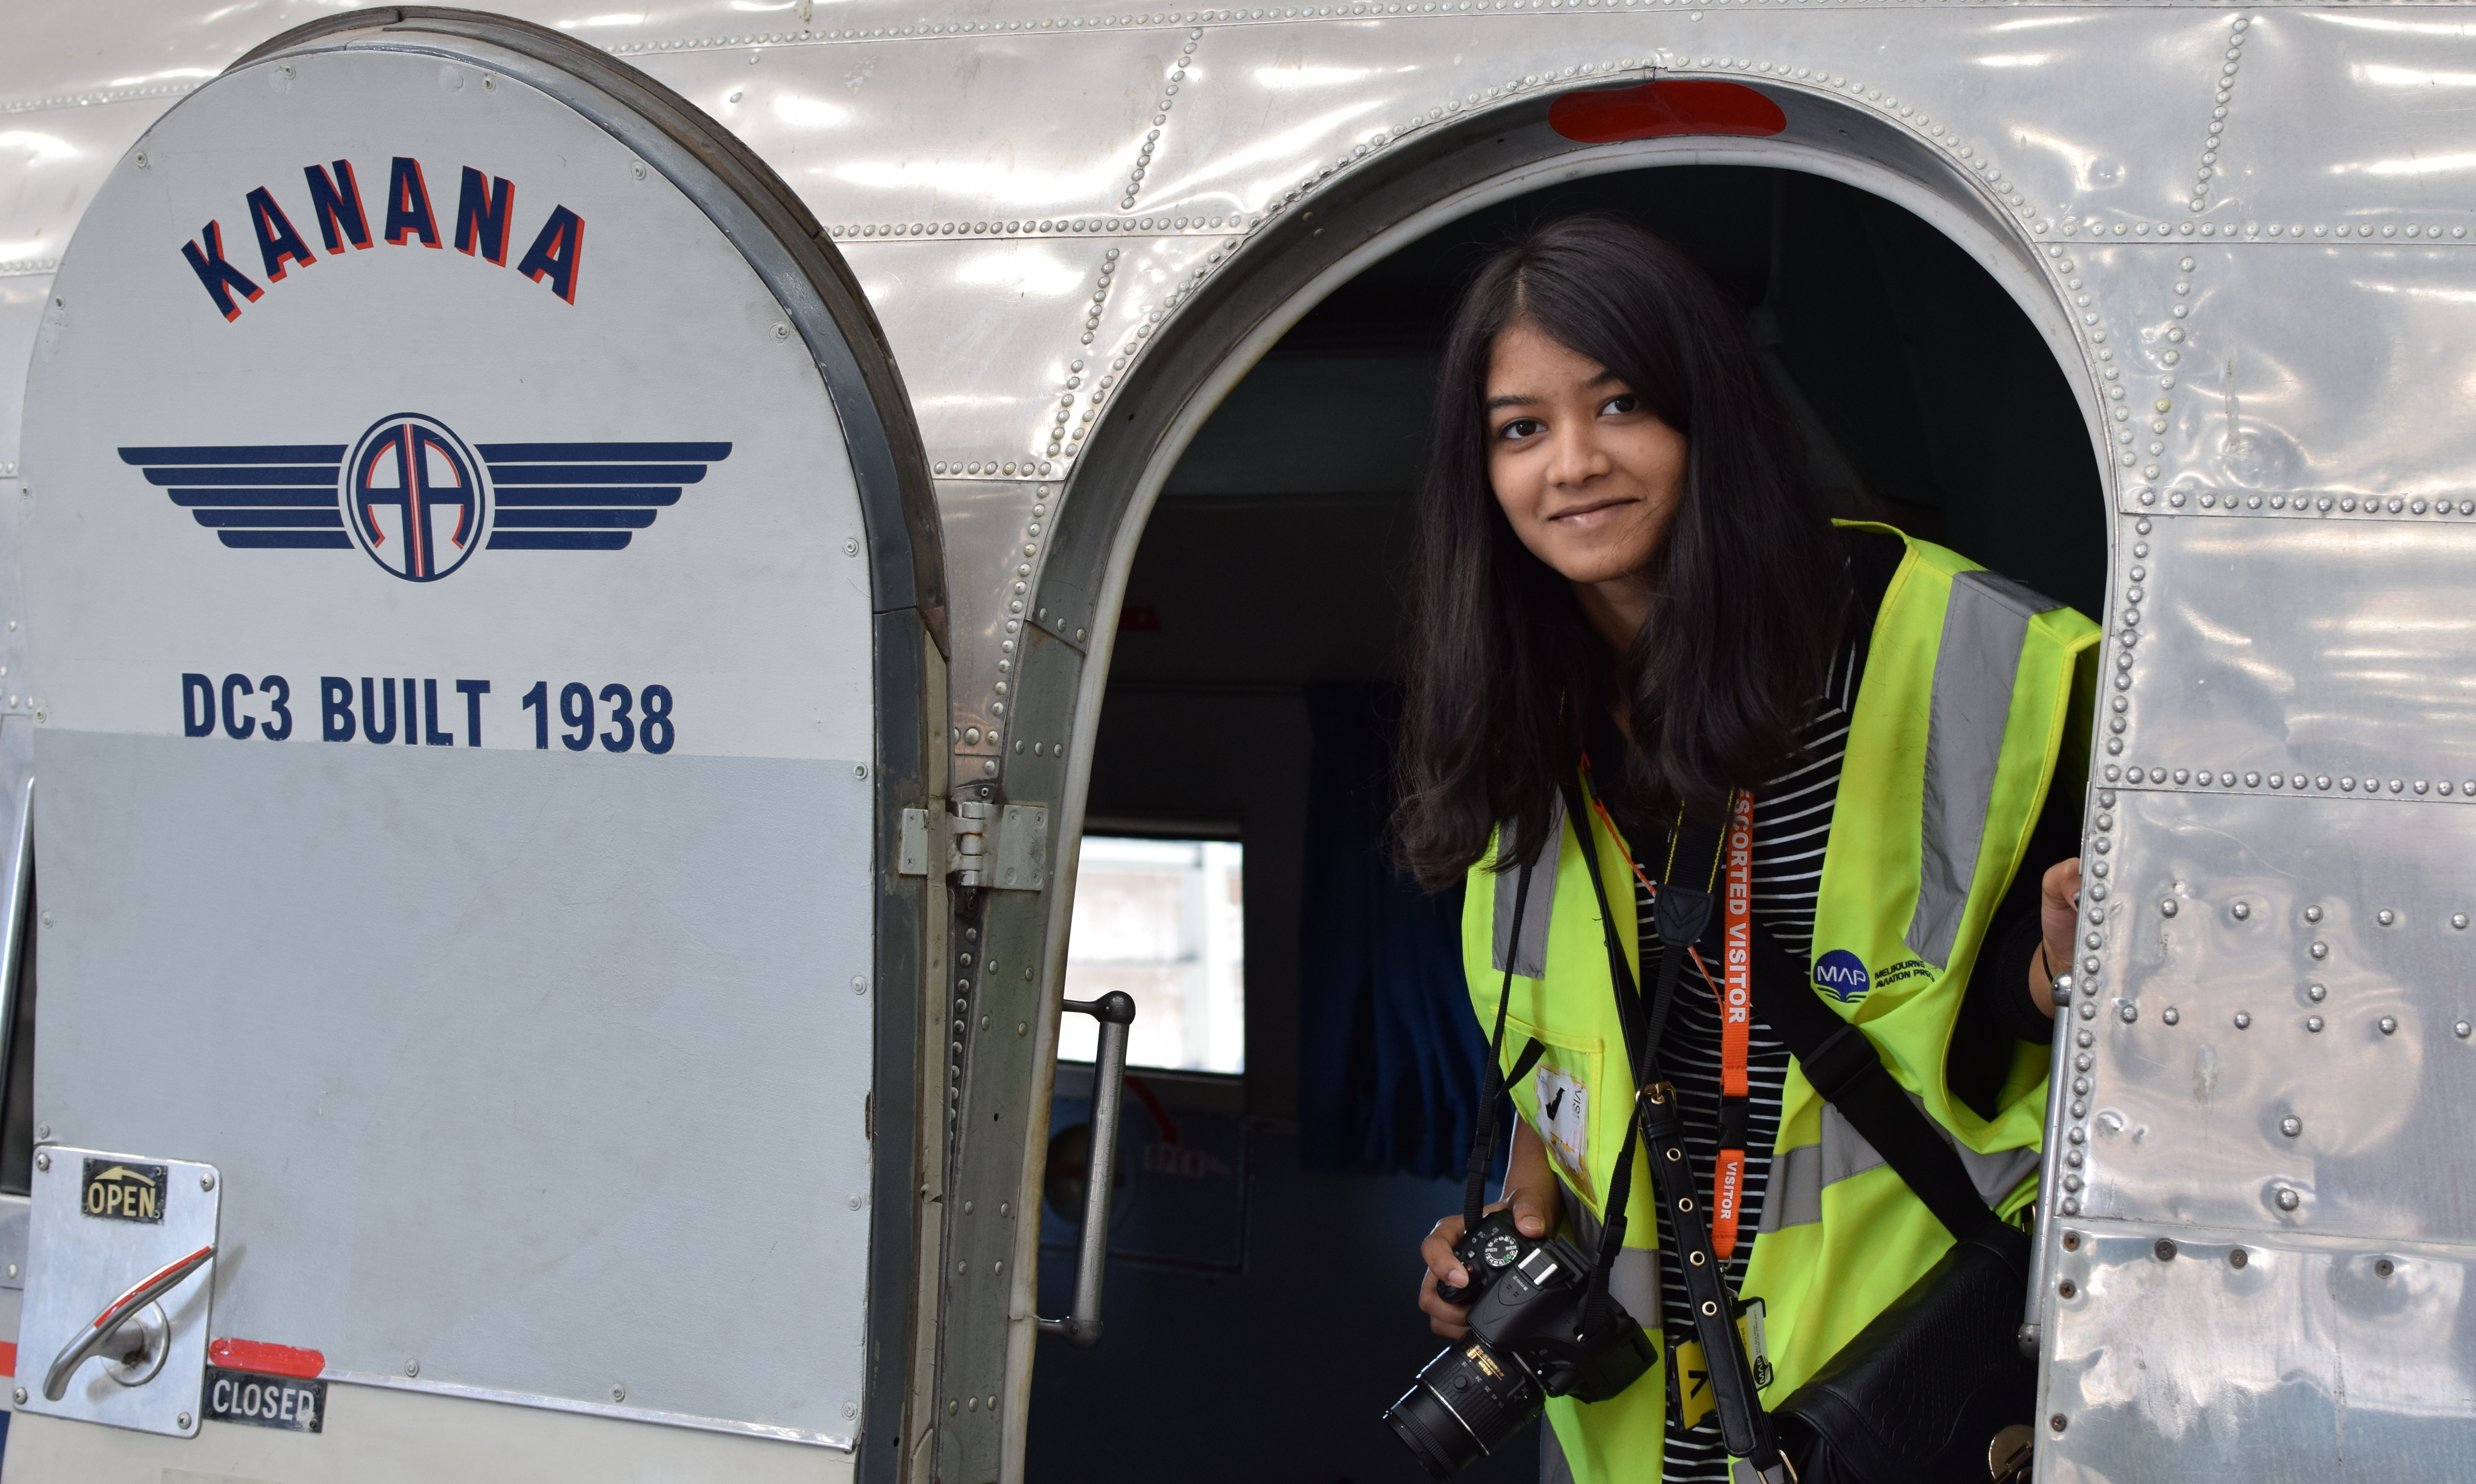 Student Neeshma Sadanandhan visiting Kanana at Melbourne Aviation Precinct.